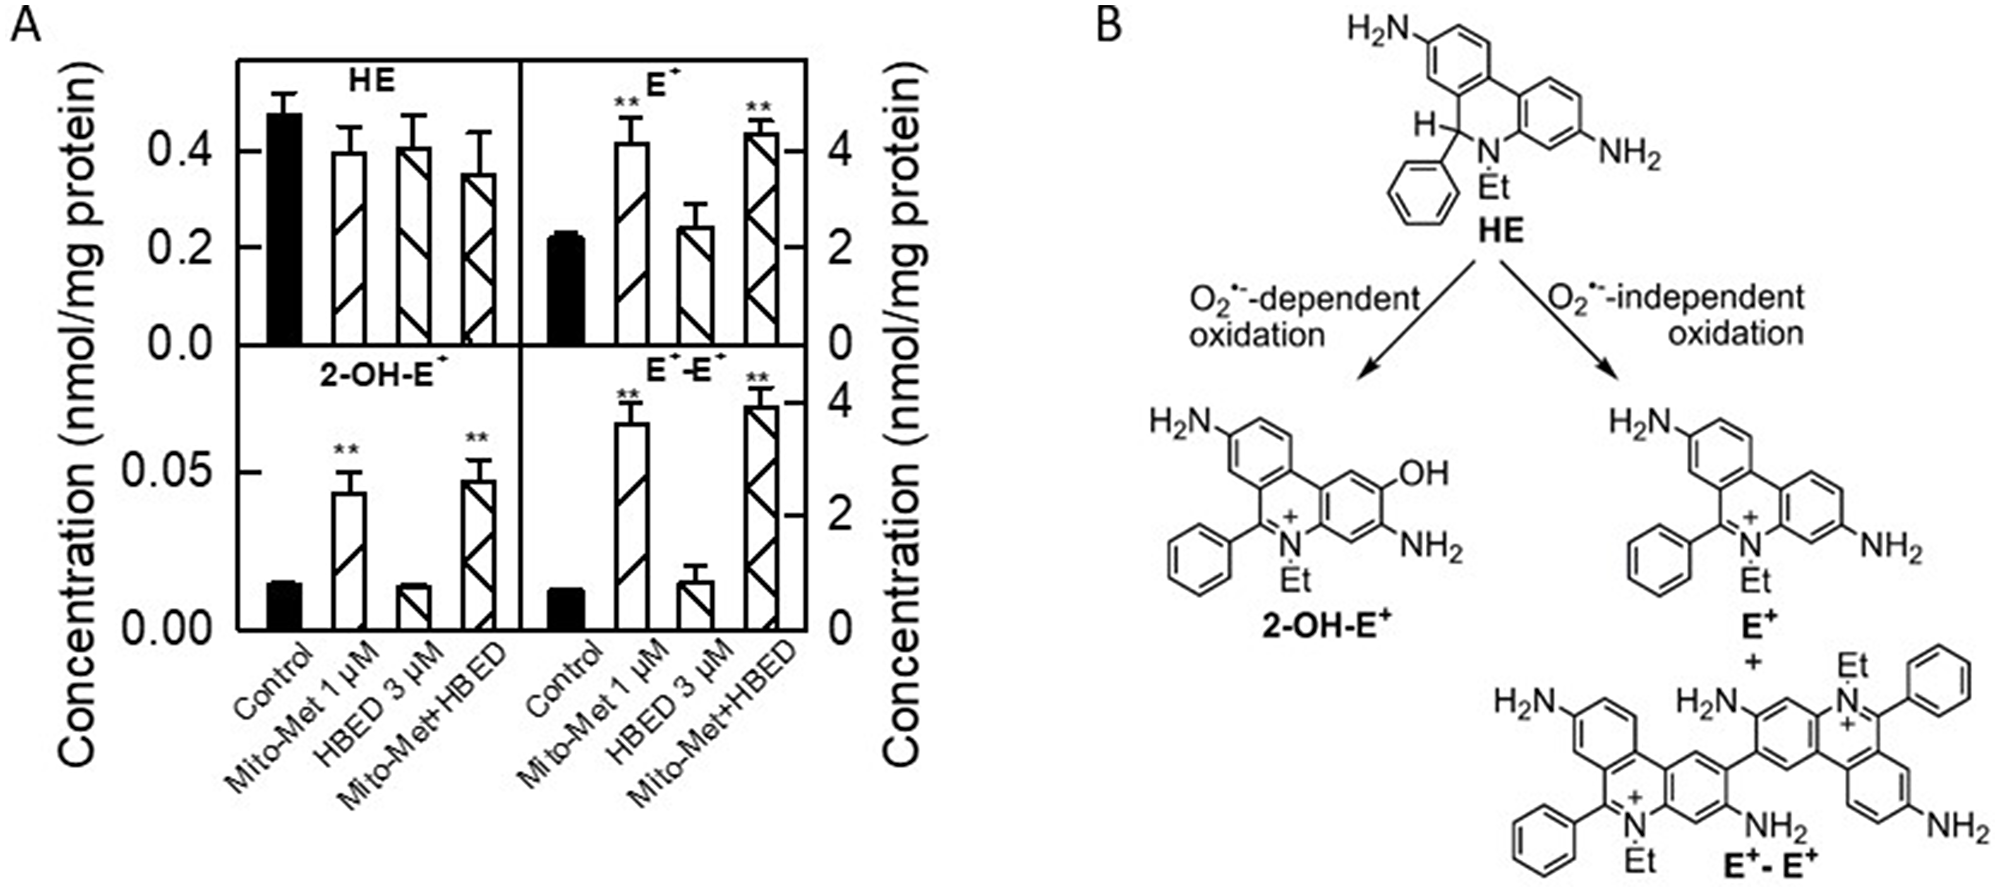 Characterization of intracellular oxidants induced by Mito-Met and HBED in MiaPaCa-2 cells.